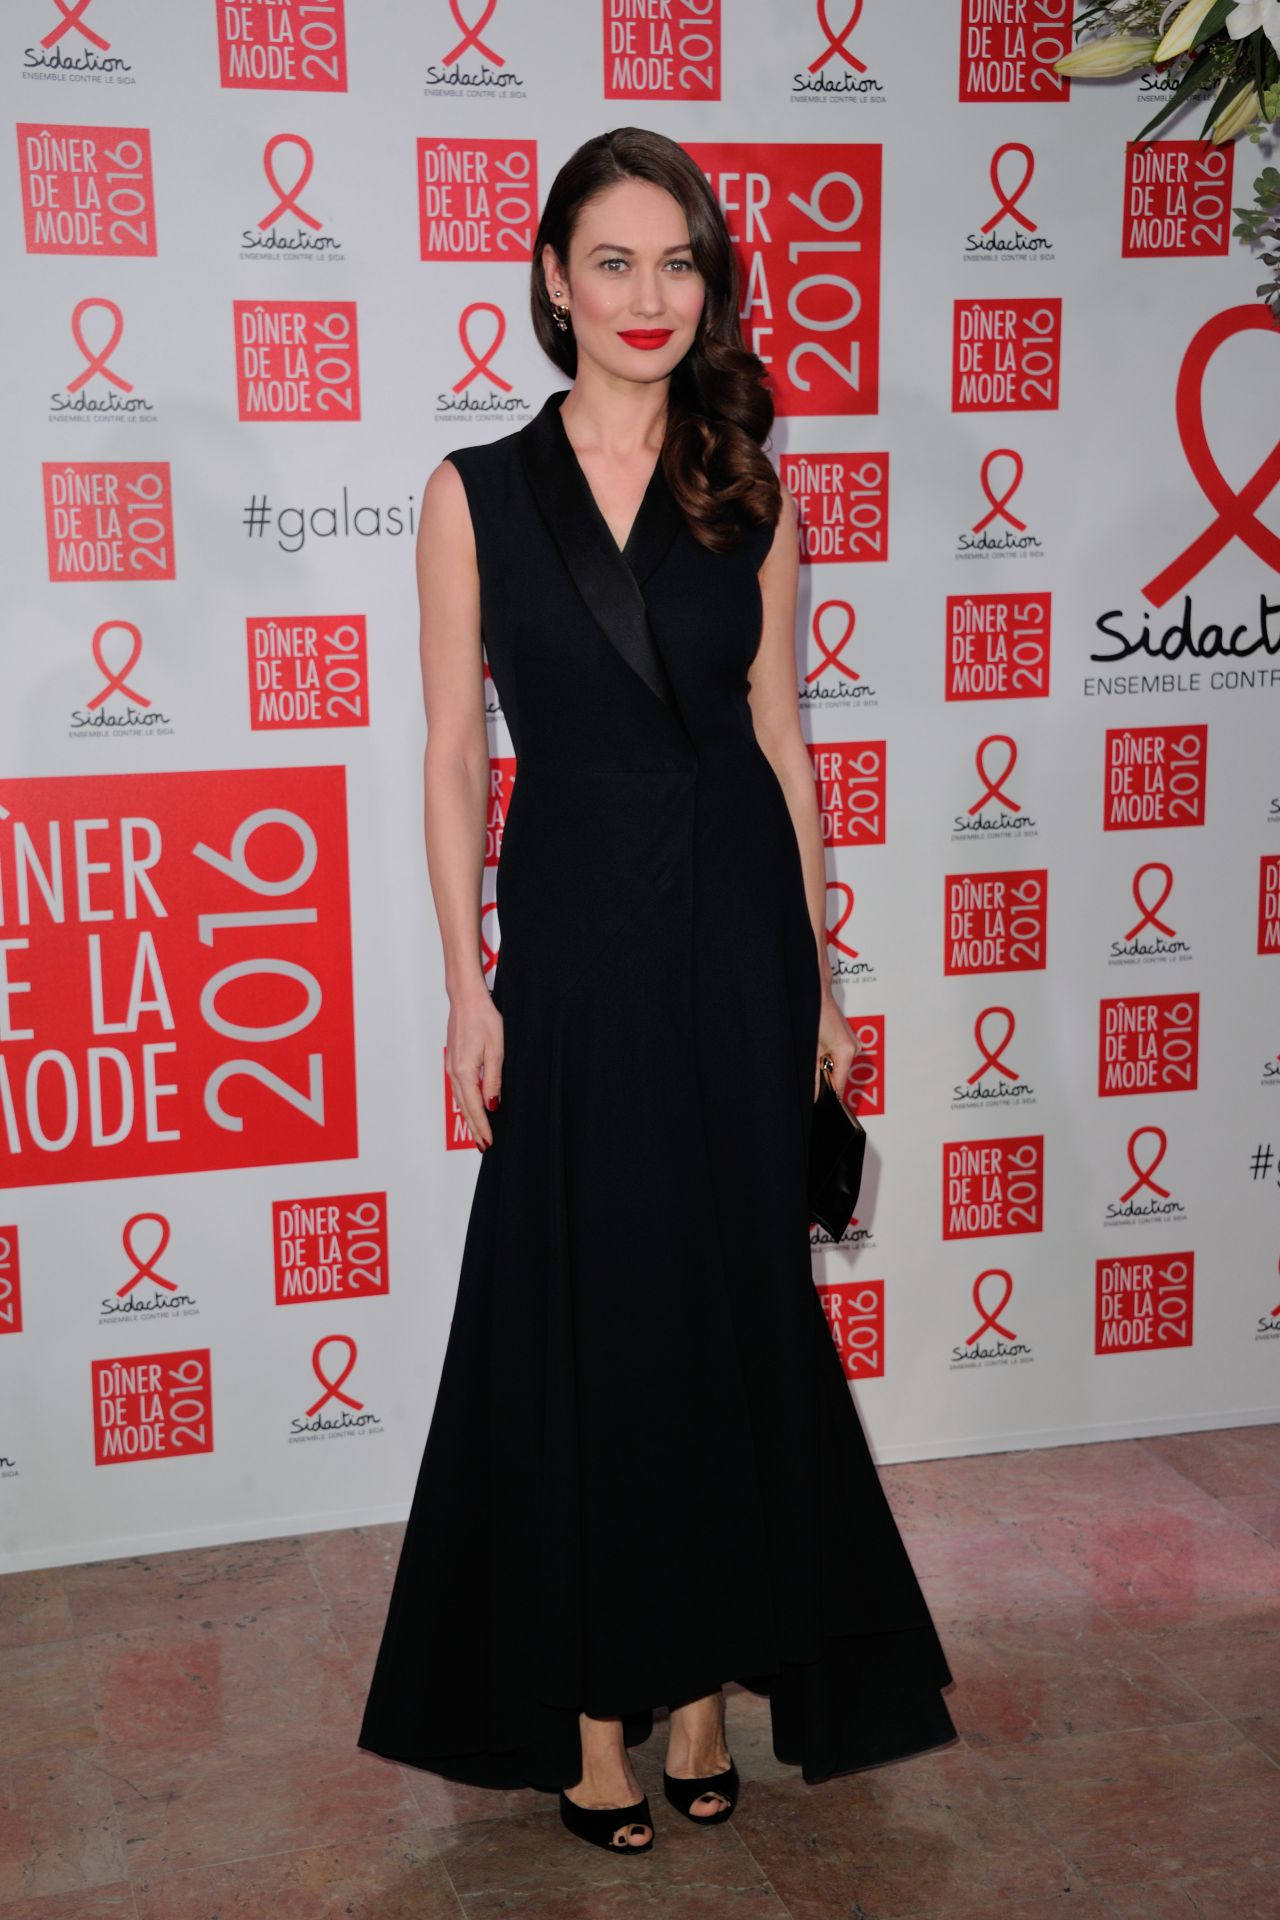 olga-kurylenko-sidaction-gala-dinner-2016-in-paris-2-1